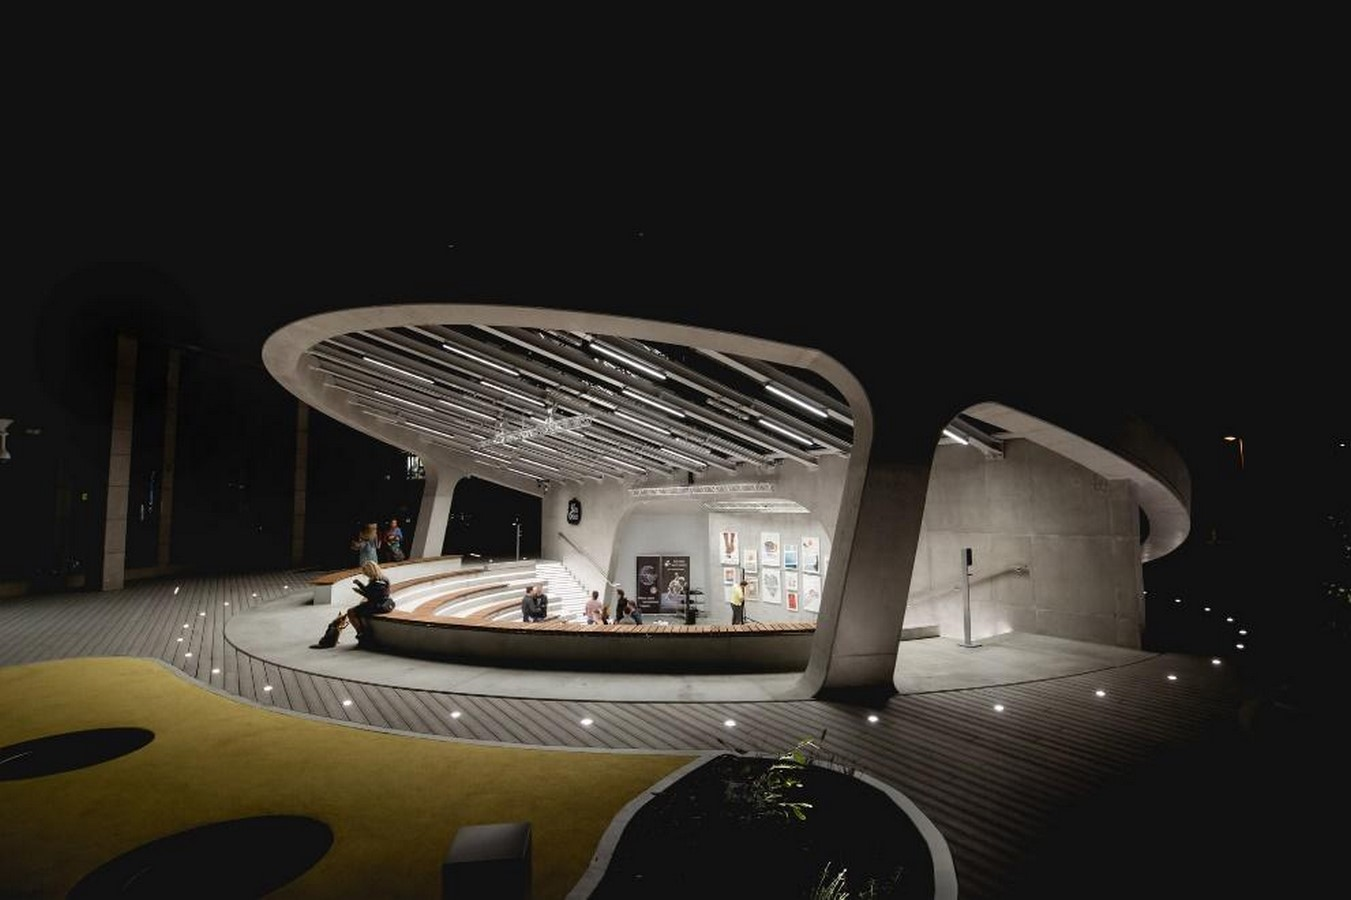 A concrete amphitheater as an 'open, democratic space' in Warsaw designed by Lina - Sheet14